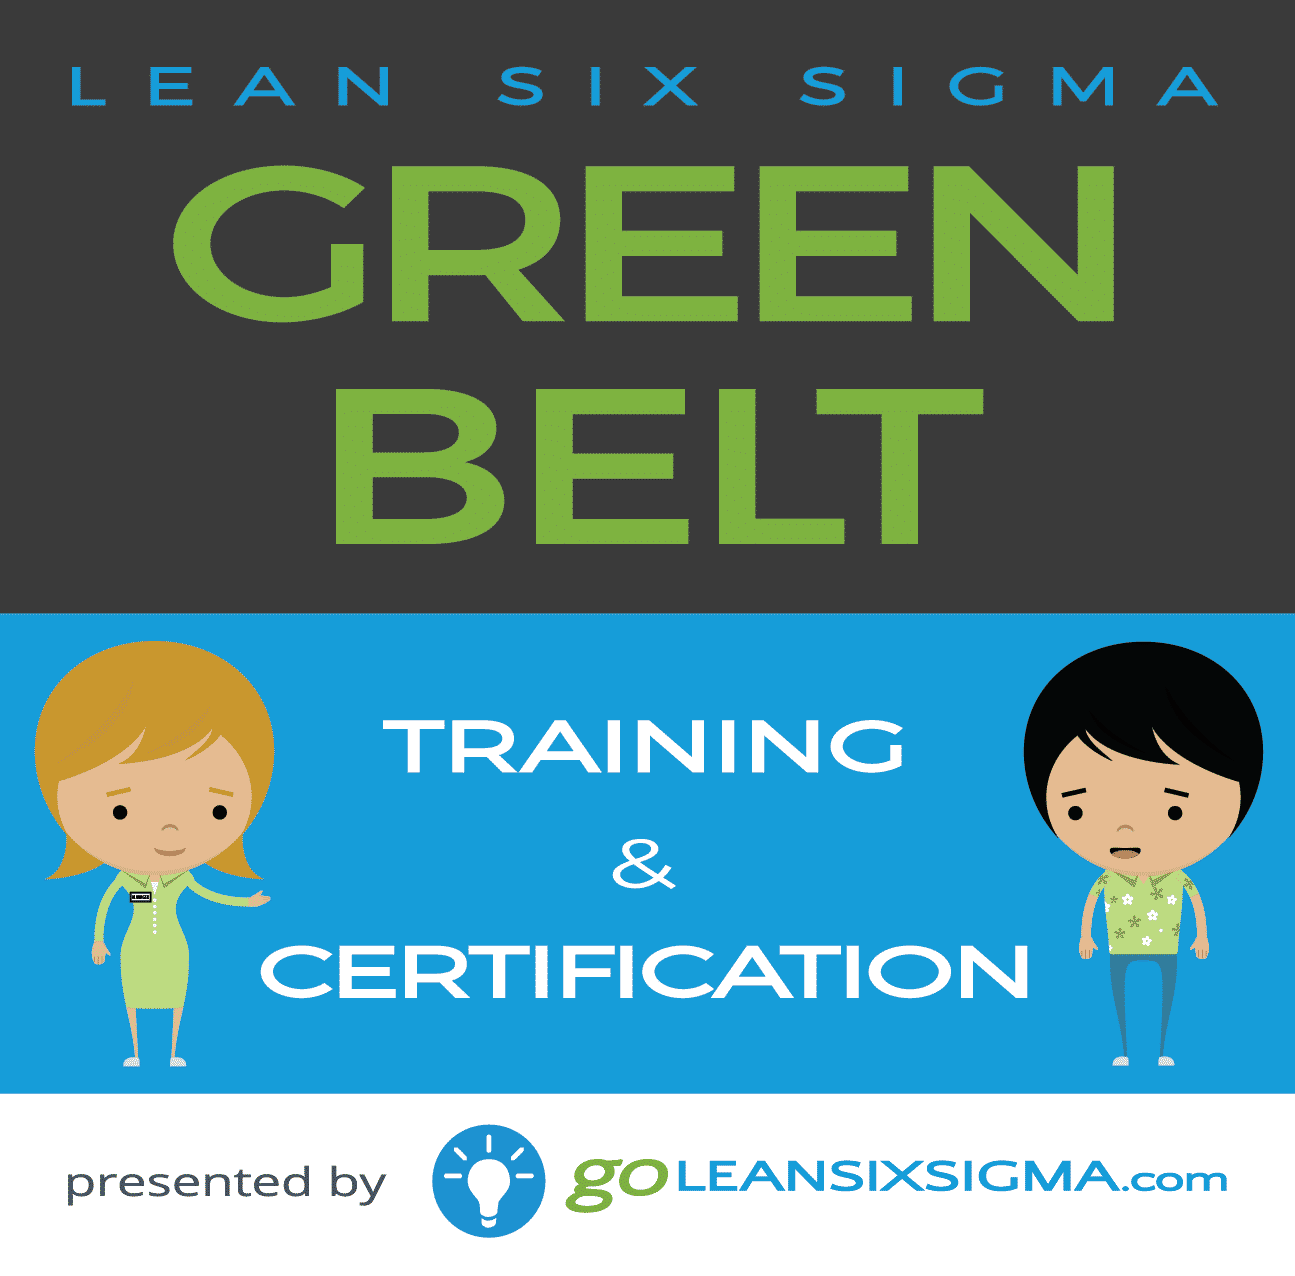 Green Belt Training & Certification